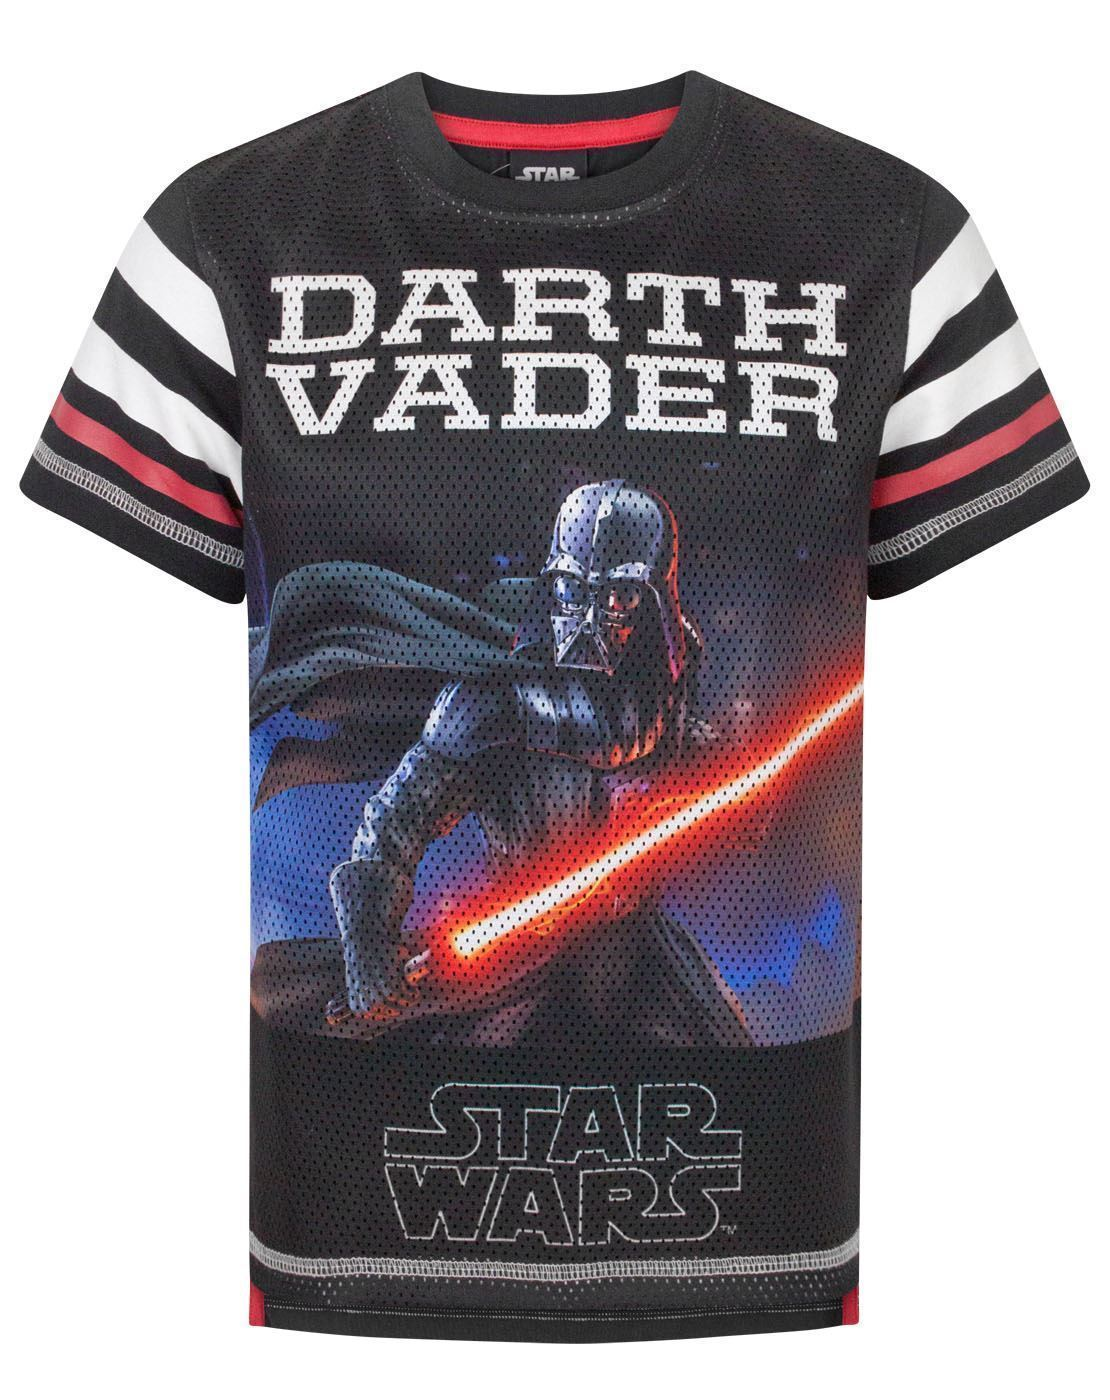 86a97abd Star Wars Darth Vader Boy's Baseball T-Shirt | Noisy Sauce Live